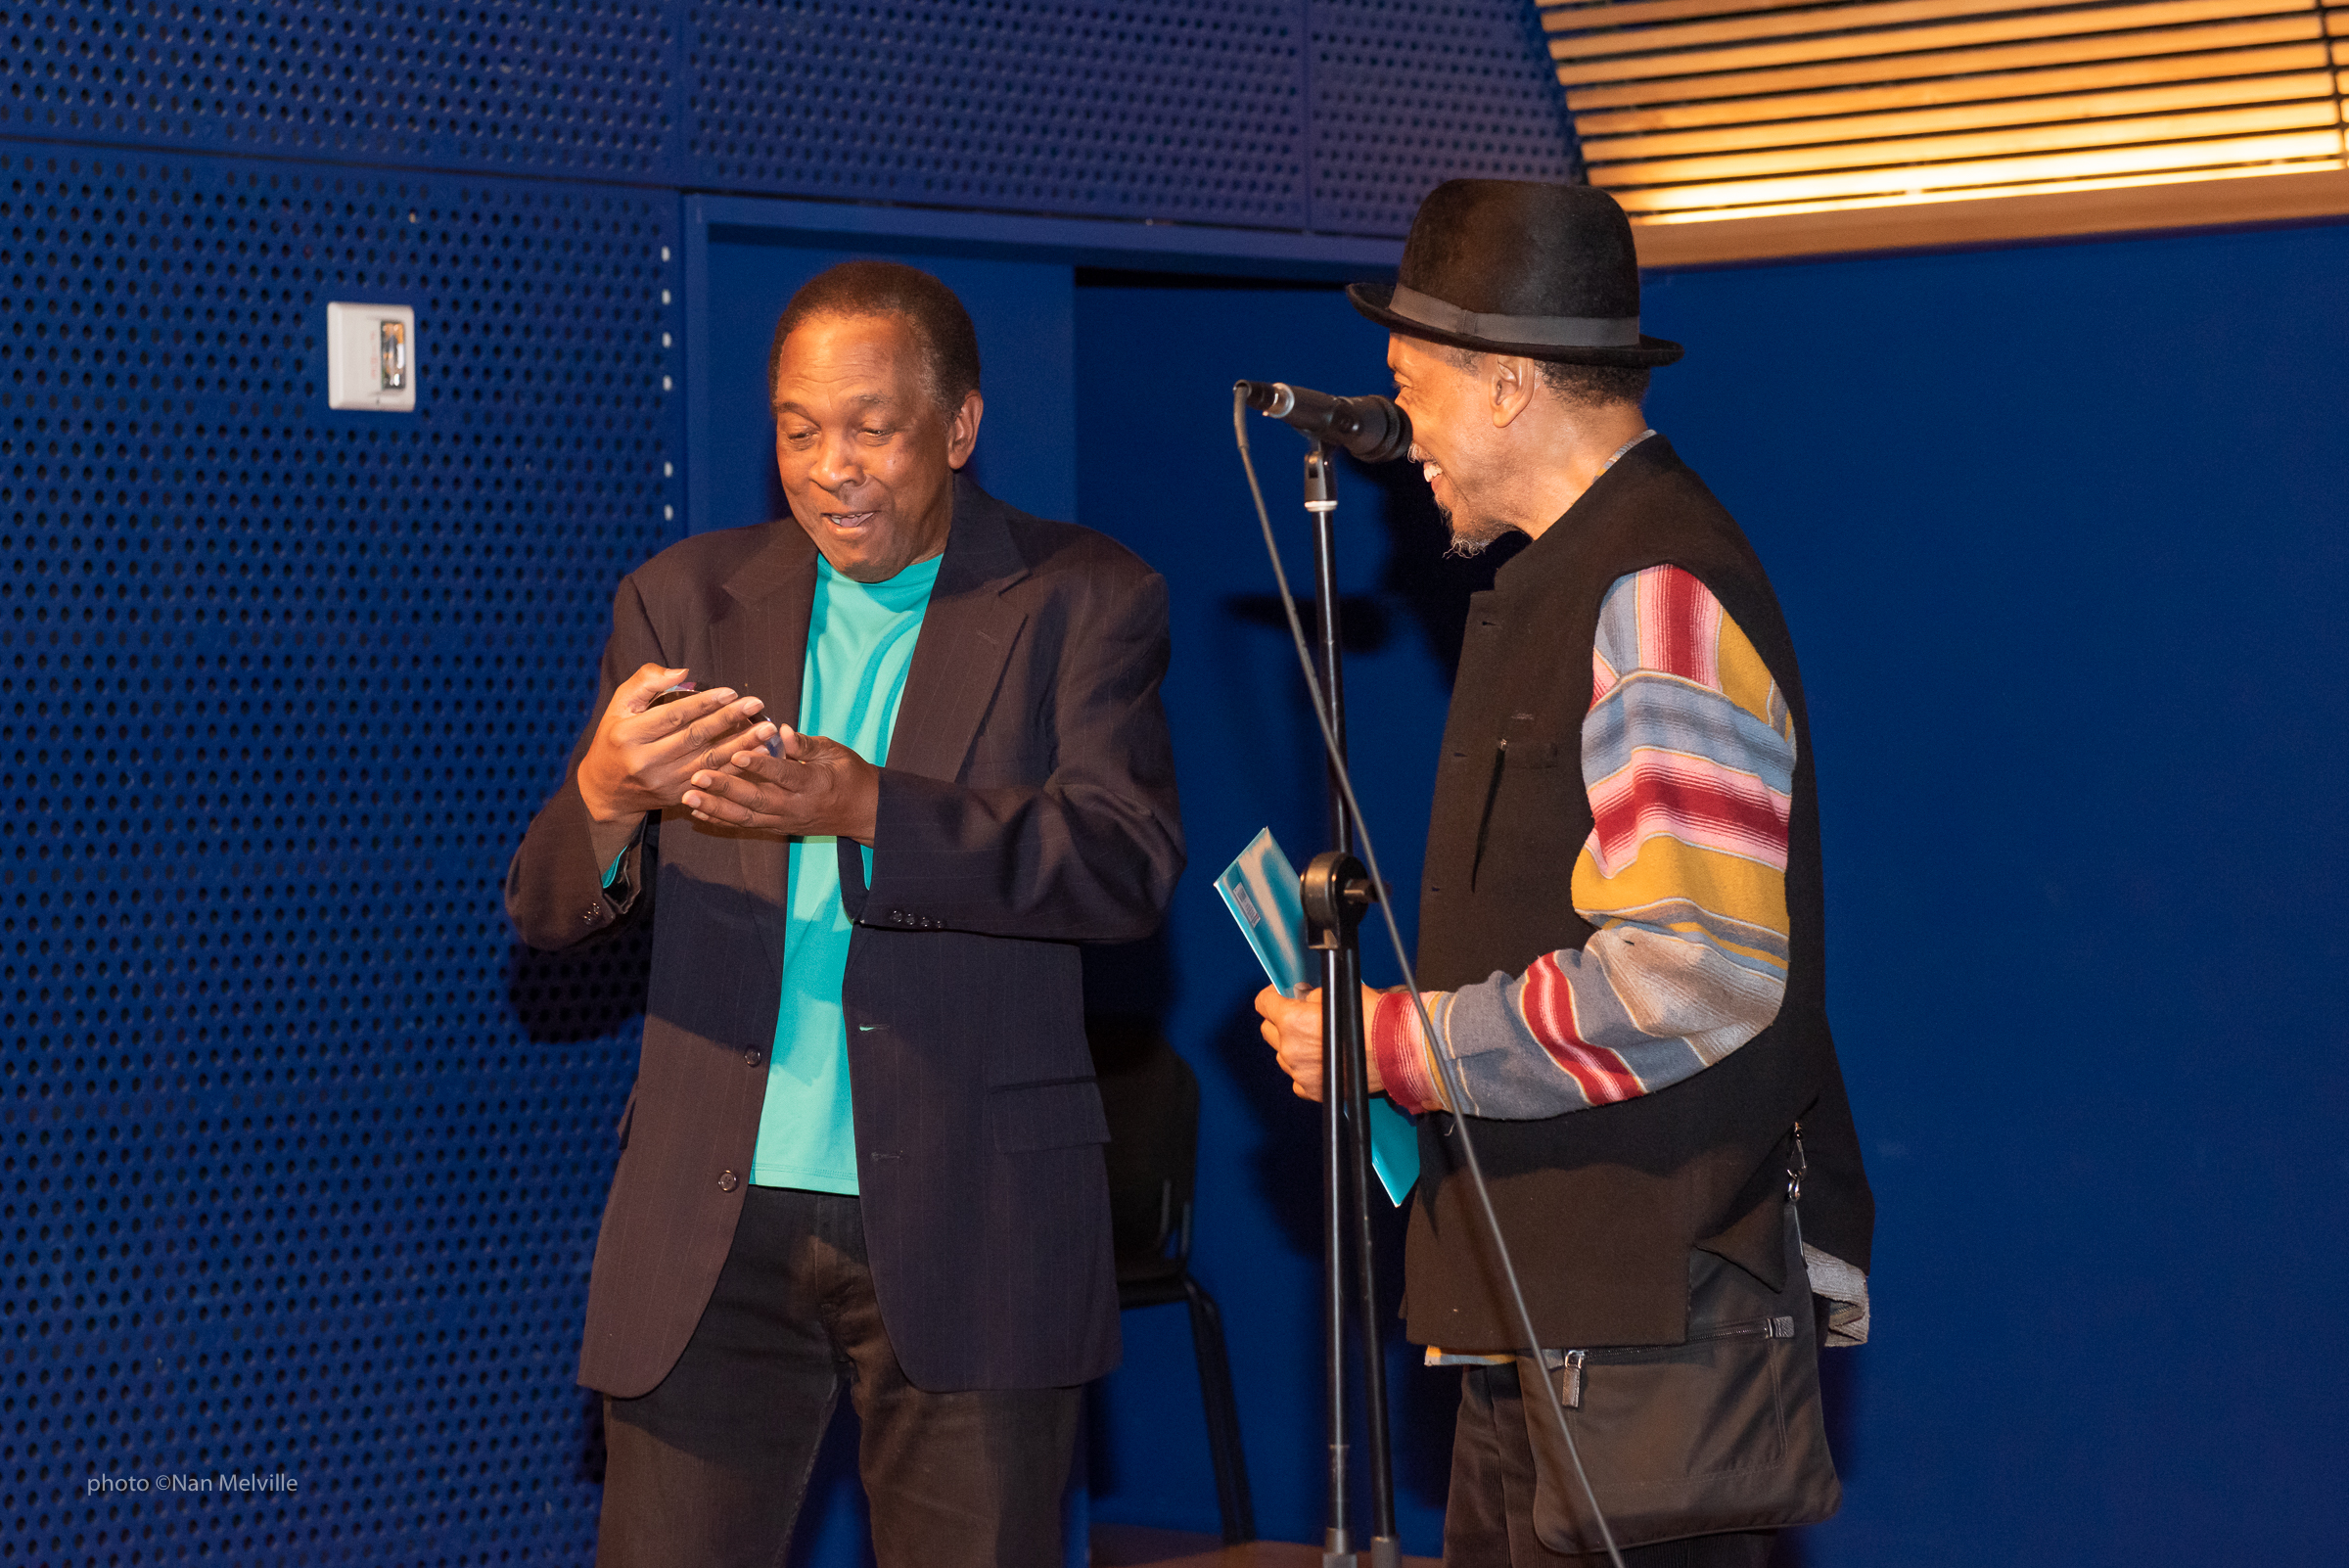 Carman Moore & Henry Threadgill